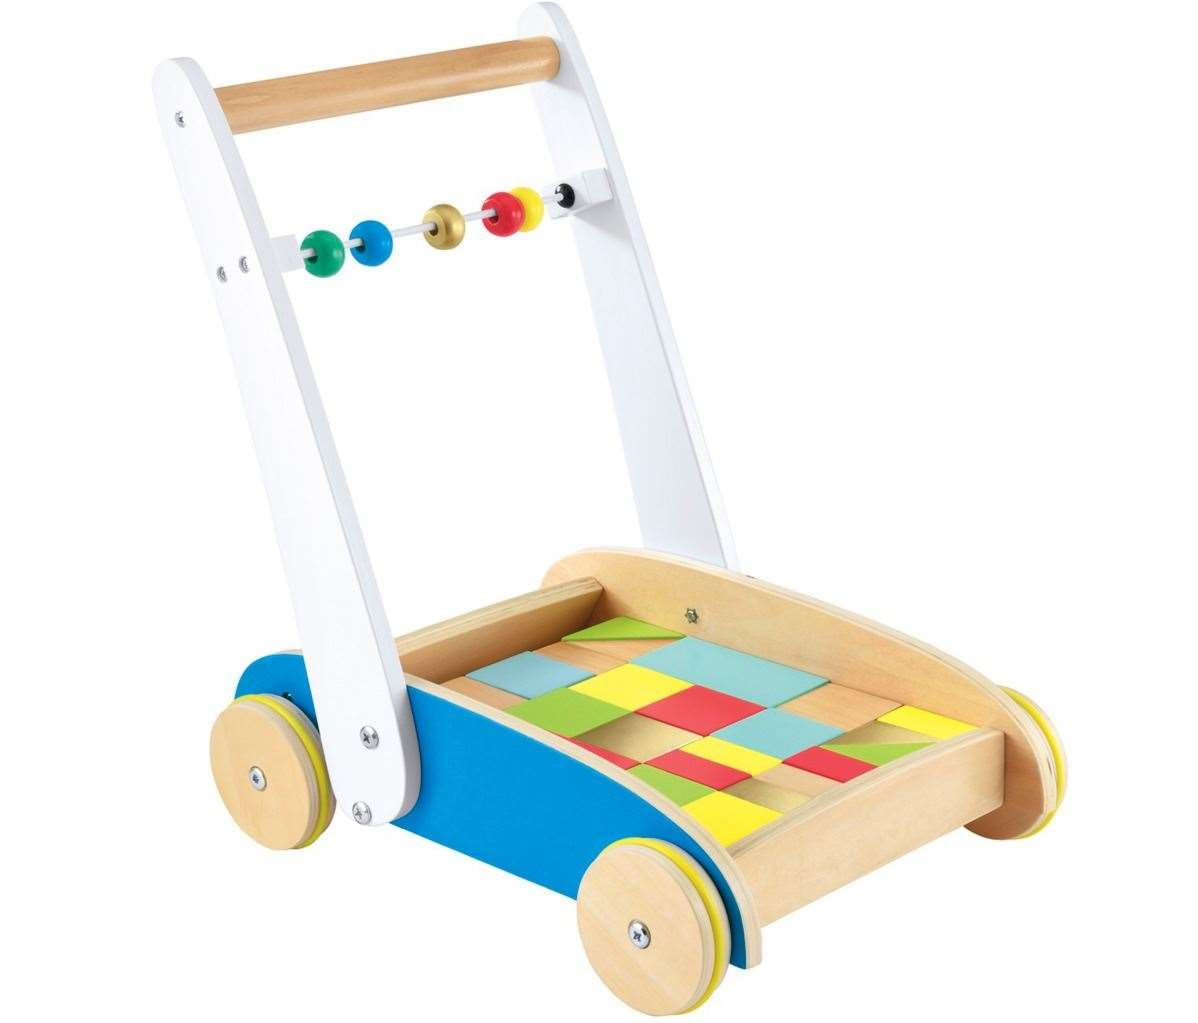 The Early Learning Centre wooden Toddle Truck is £39.99